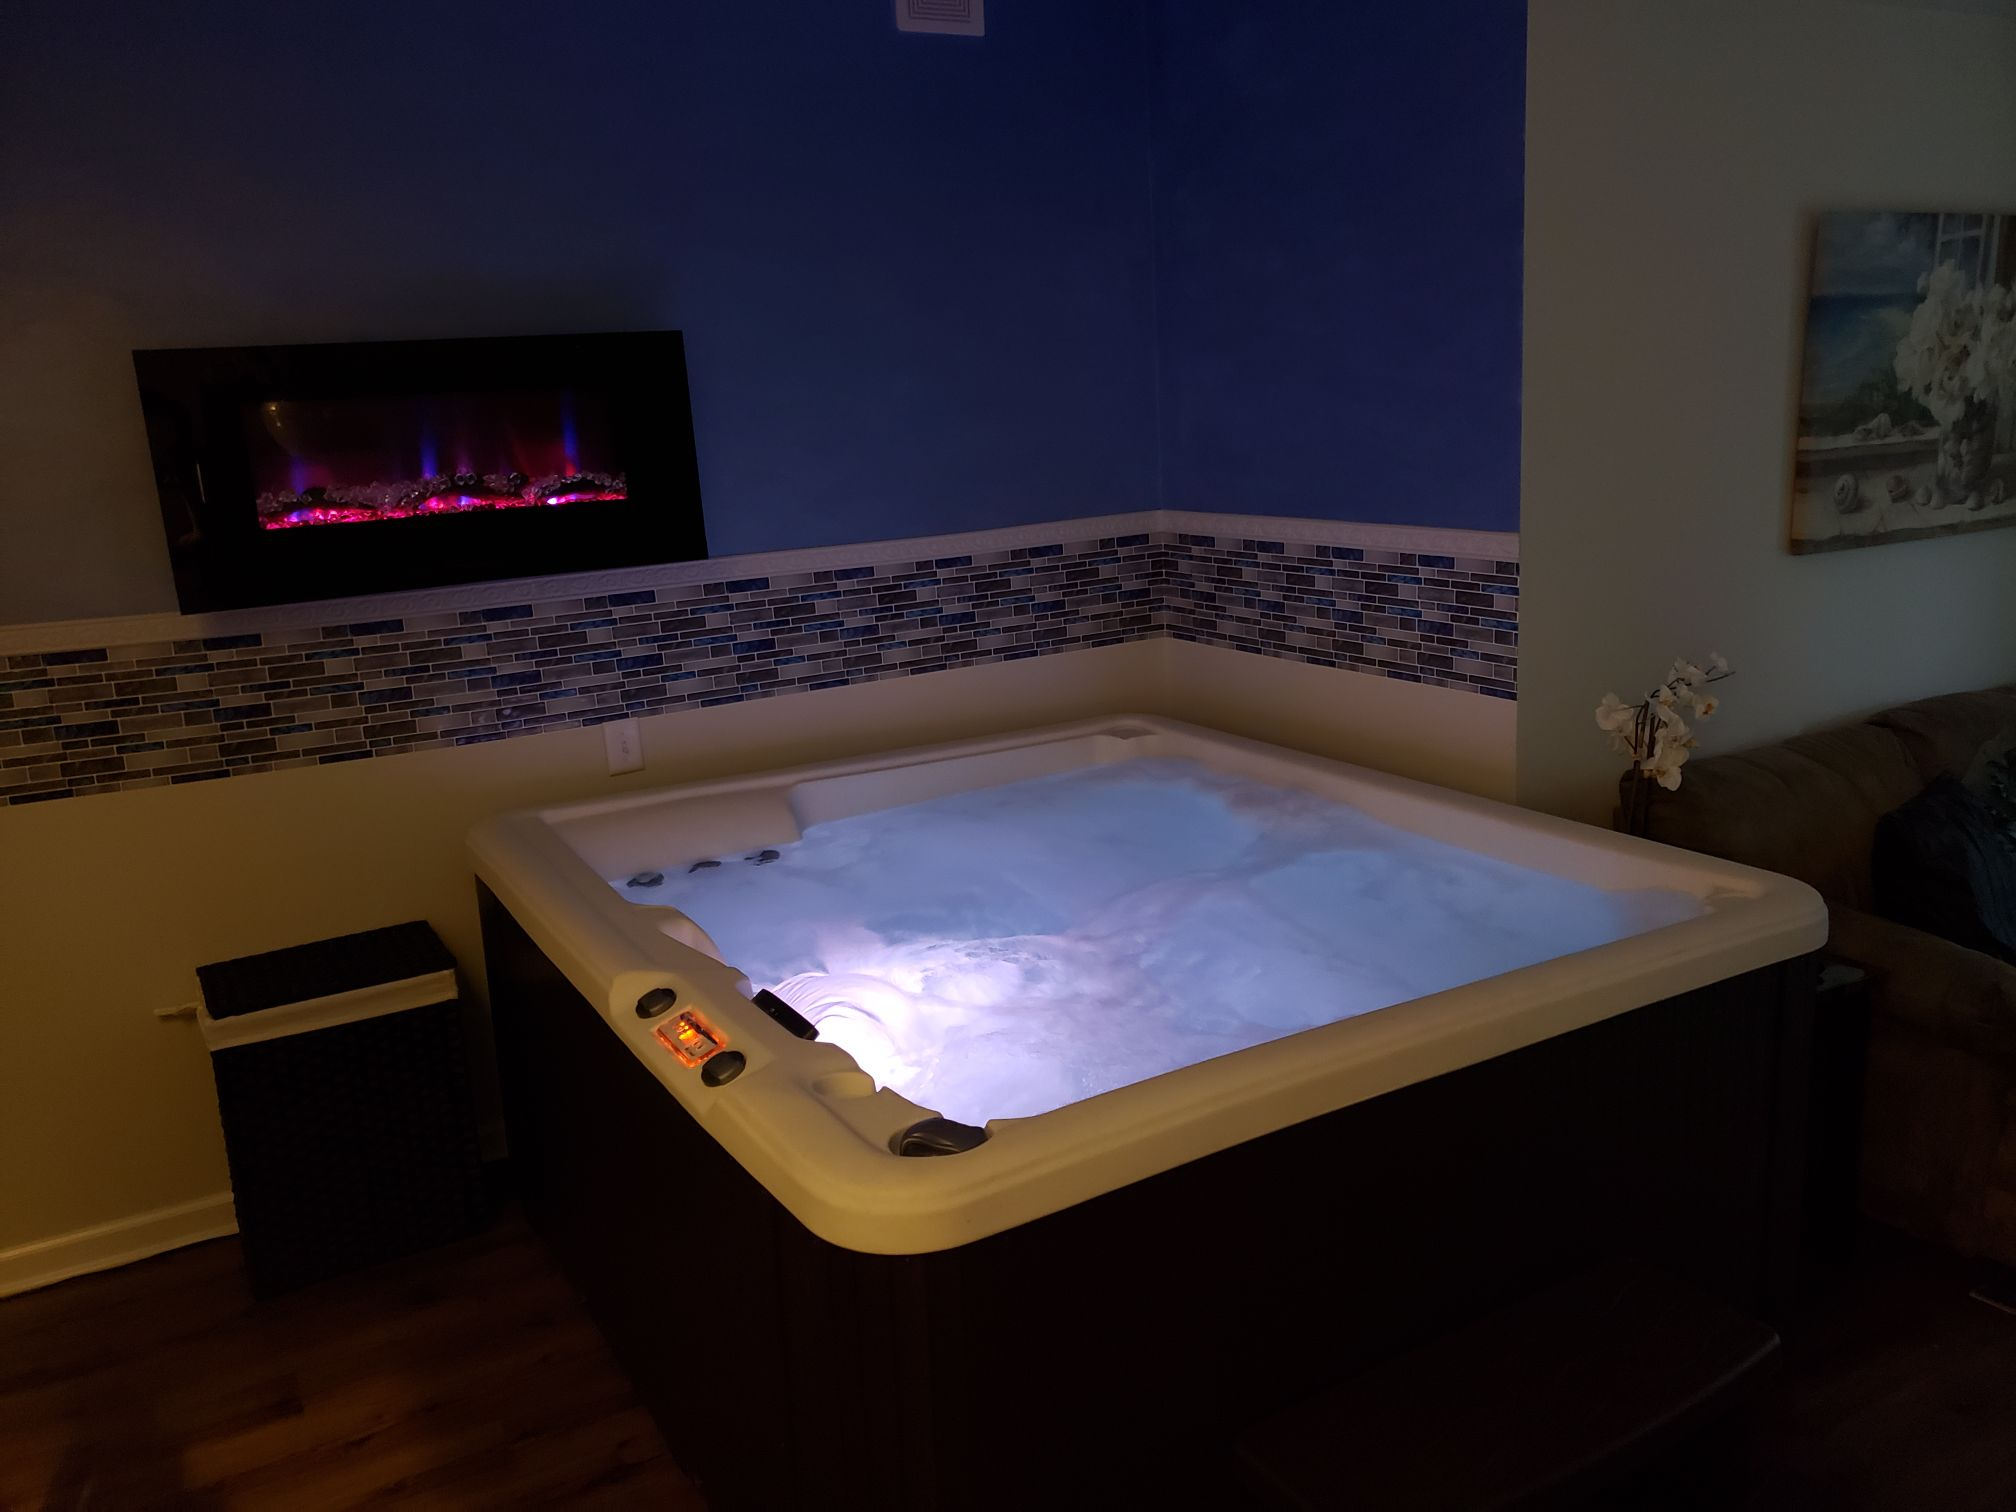 Luxury Indoor Hottub Suite Guest Suites For Rent In Indianapolis Indiana United States